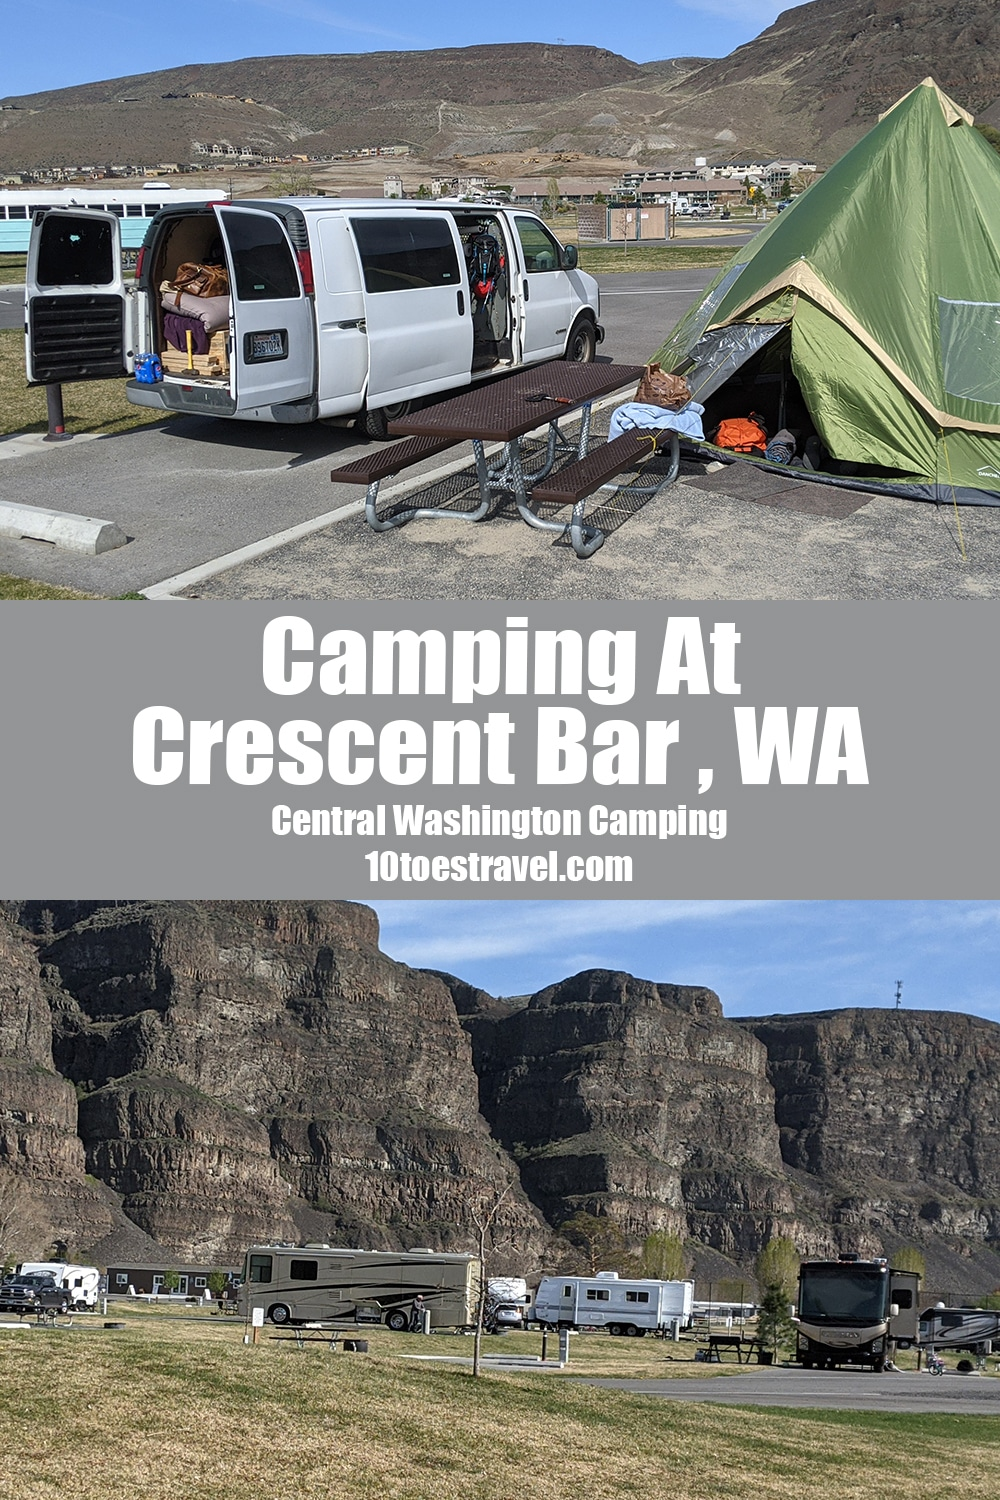 Information on camping at Crescent Bar Recreation Area near Quincy, Washington